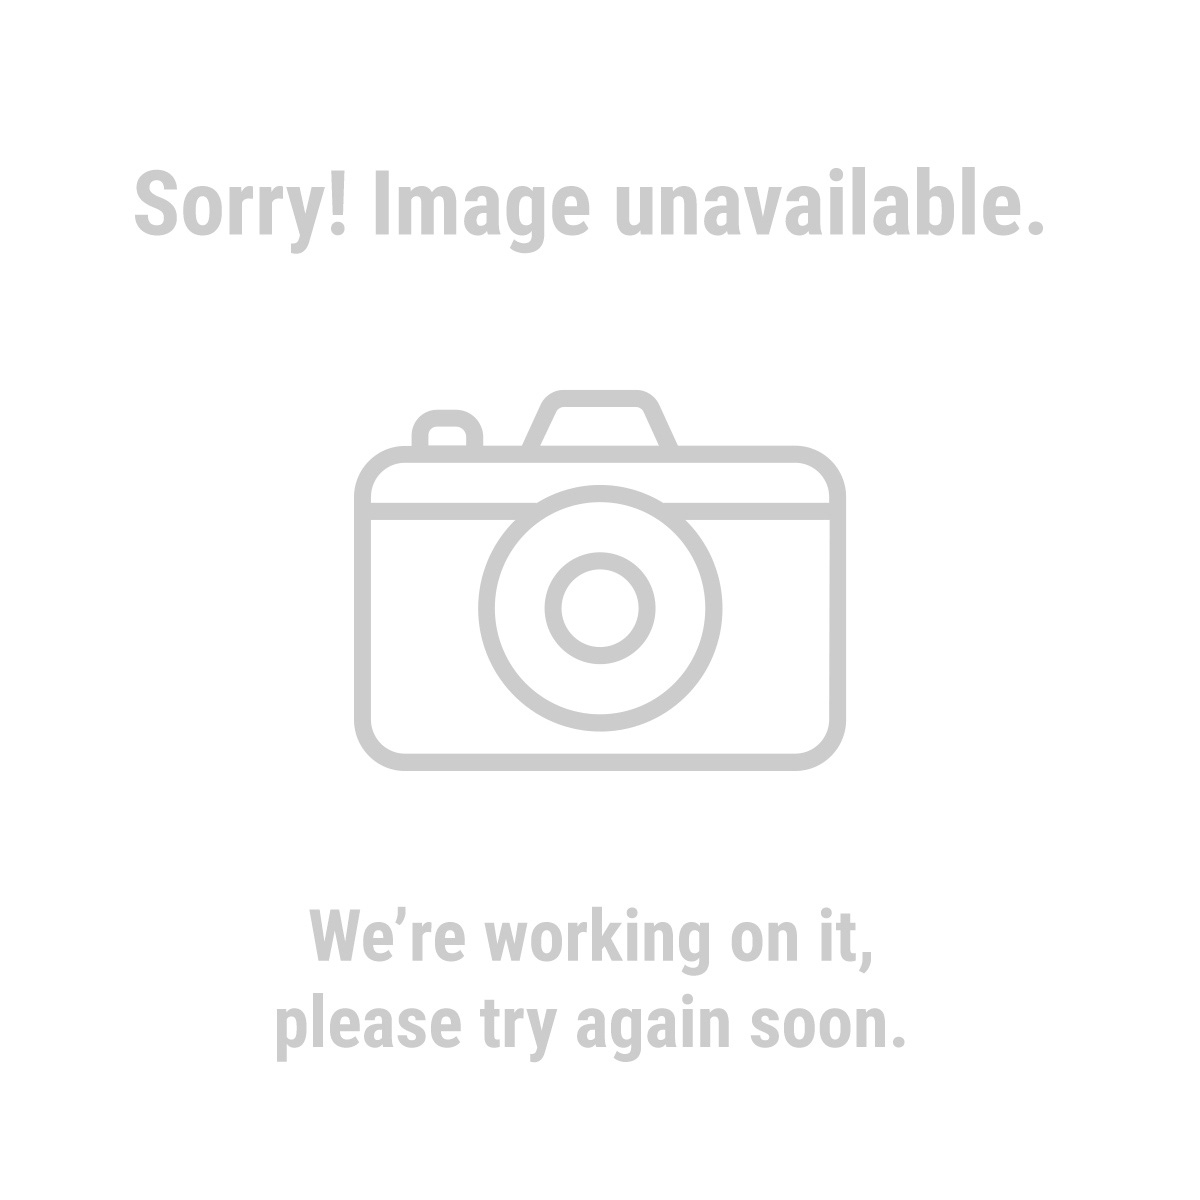 Drill Master 43695 5 Piece High Speed Steel Router Bit Set